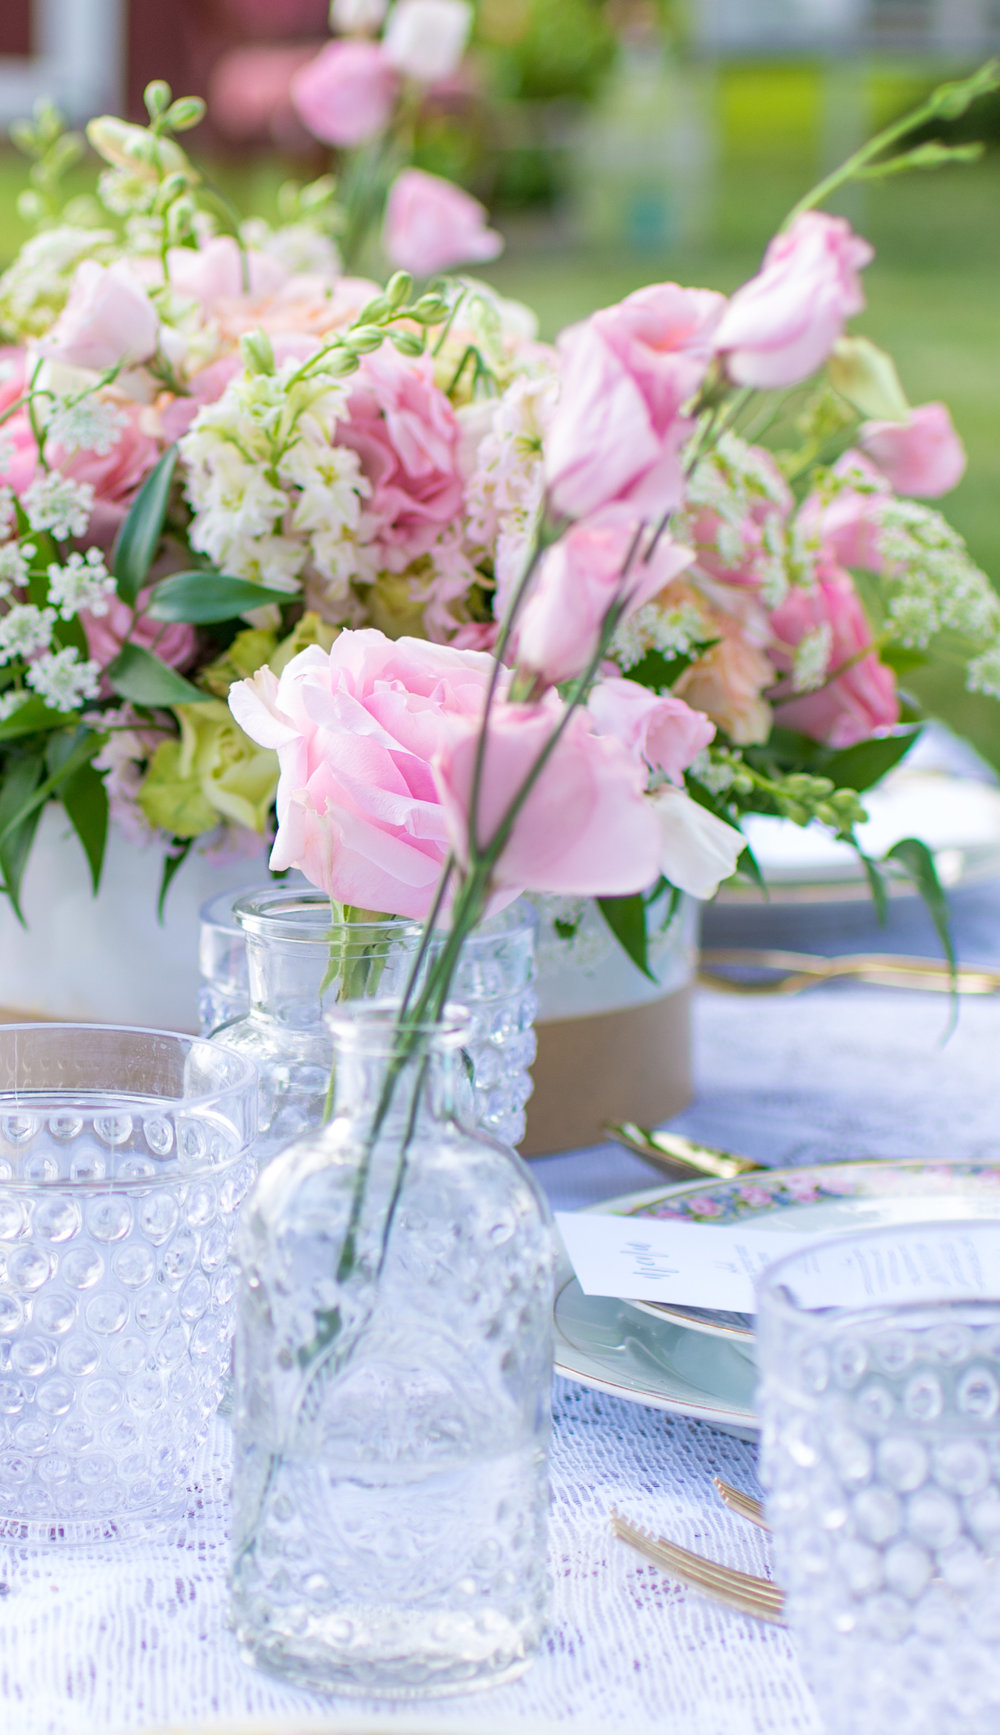 Vintage Garden Birthday Party Tablescape with clear milk glass vases / Pretty Pink Roses for Outdoor Garden Parties / photo by Honeysuckle Rose Photography - as seen on www.GiggleHearts.com